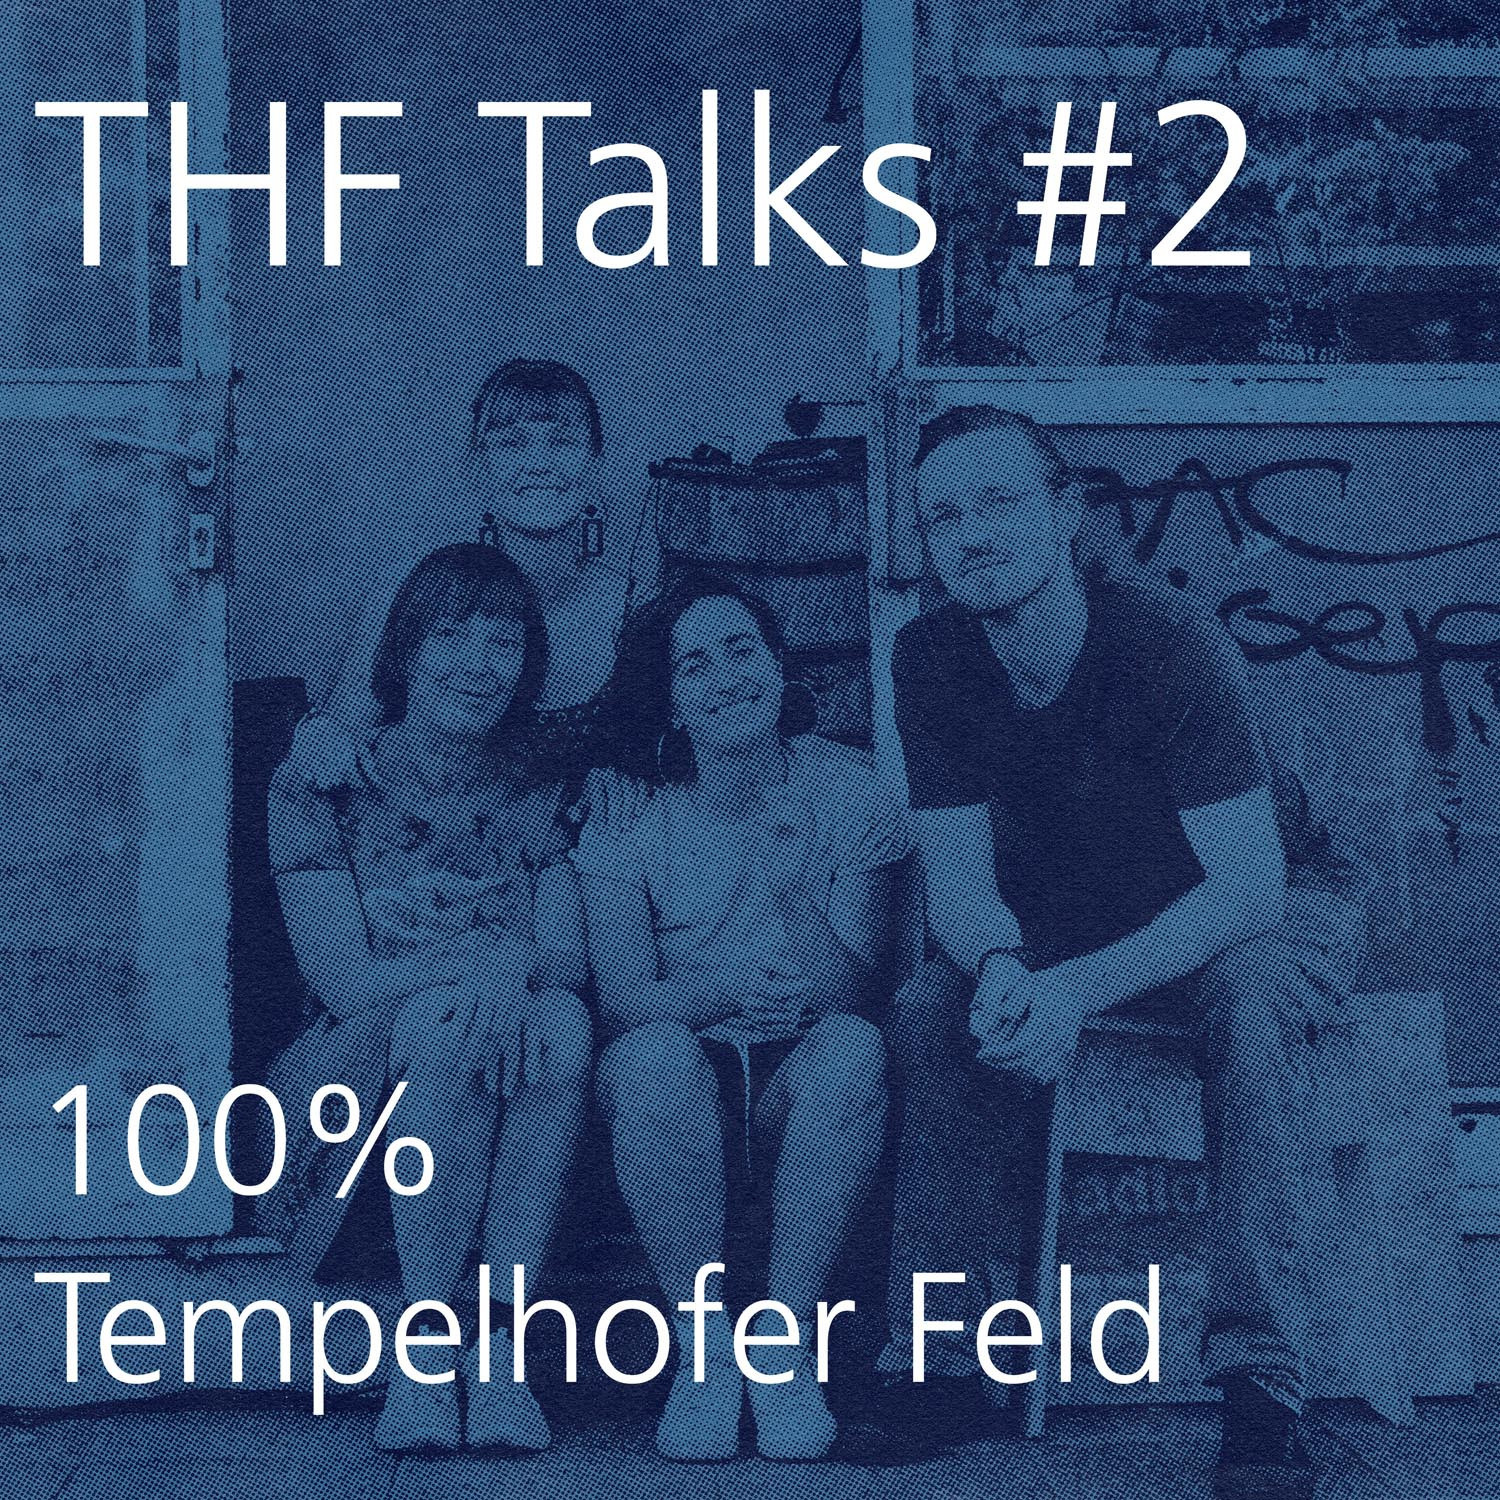 THF Talks #2 100% Tempelhofer Feld